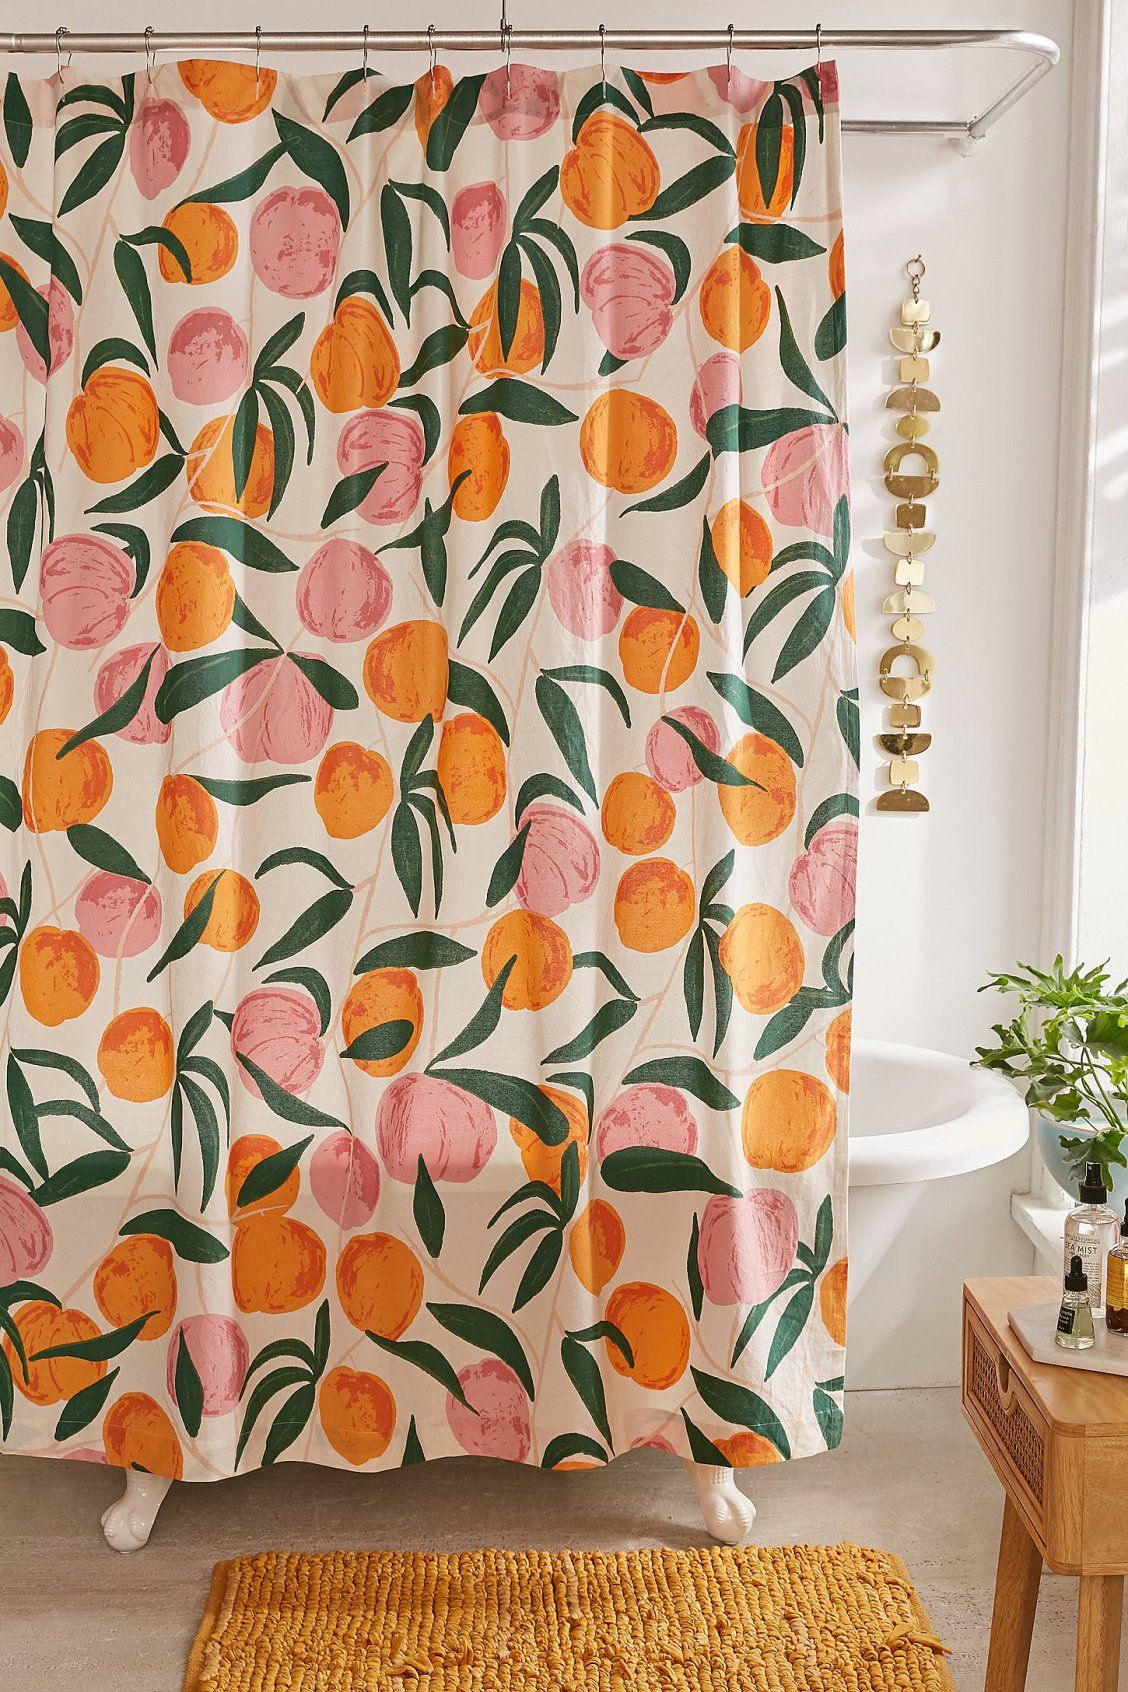 Allover Fruits Shower Curtain Peach Shower Curtain Urban